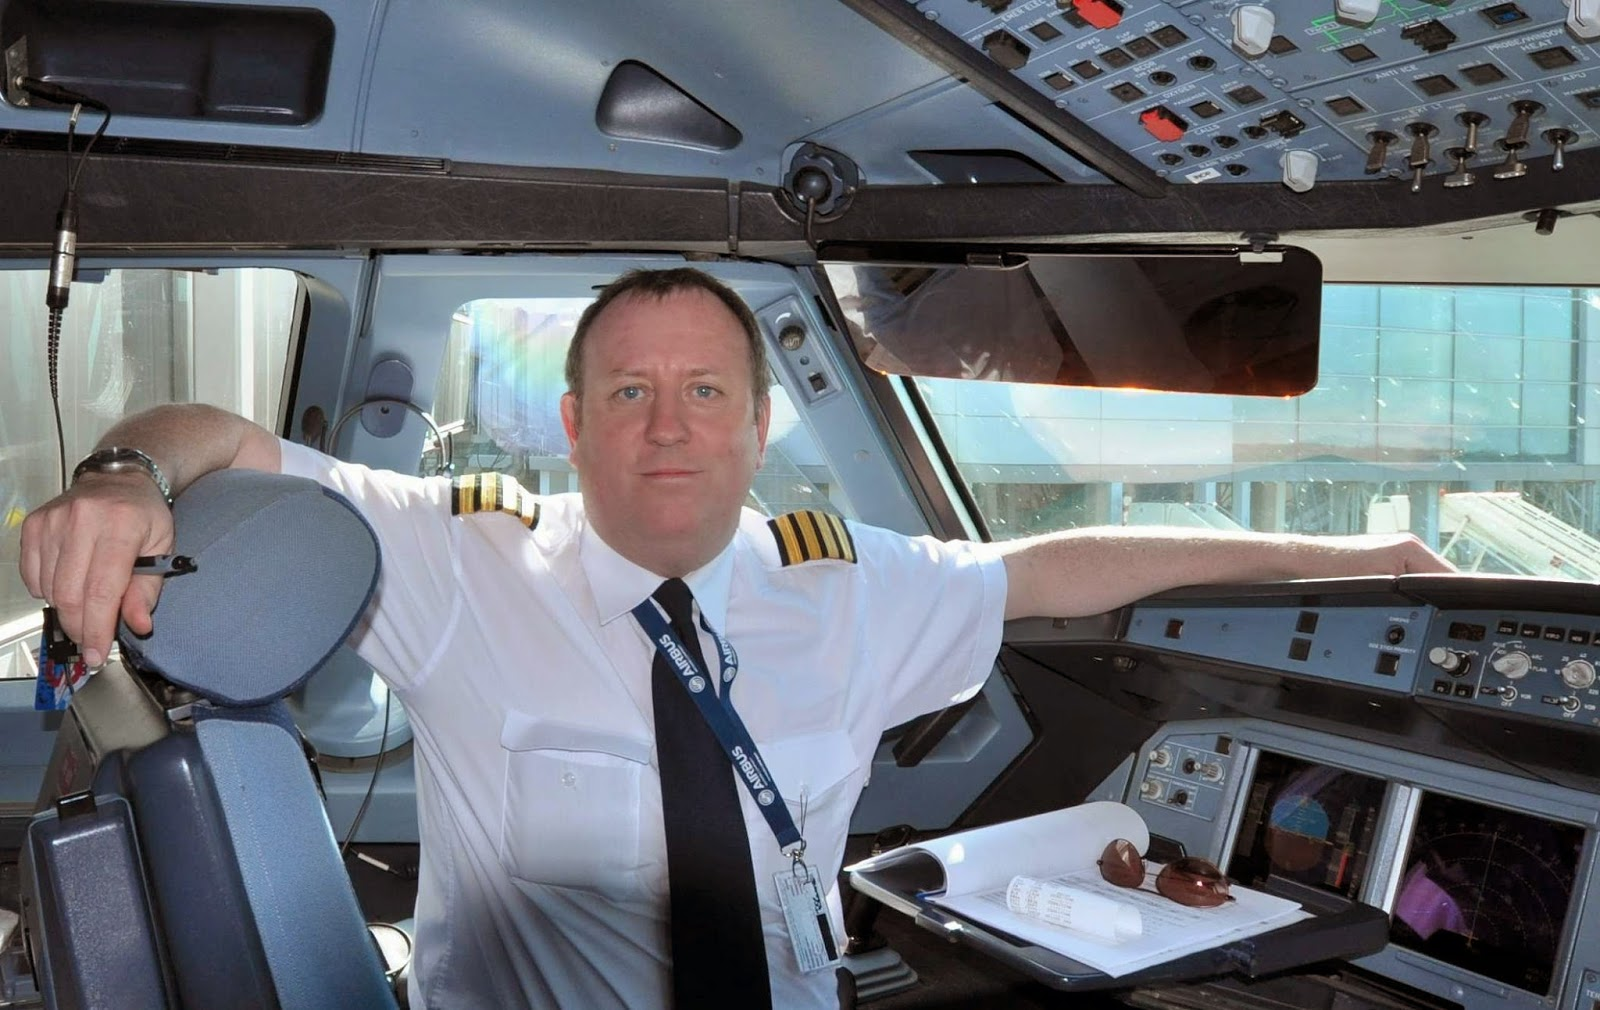 American airline pilot essay about muslims